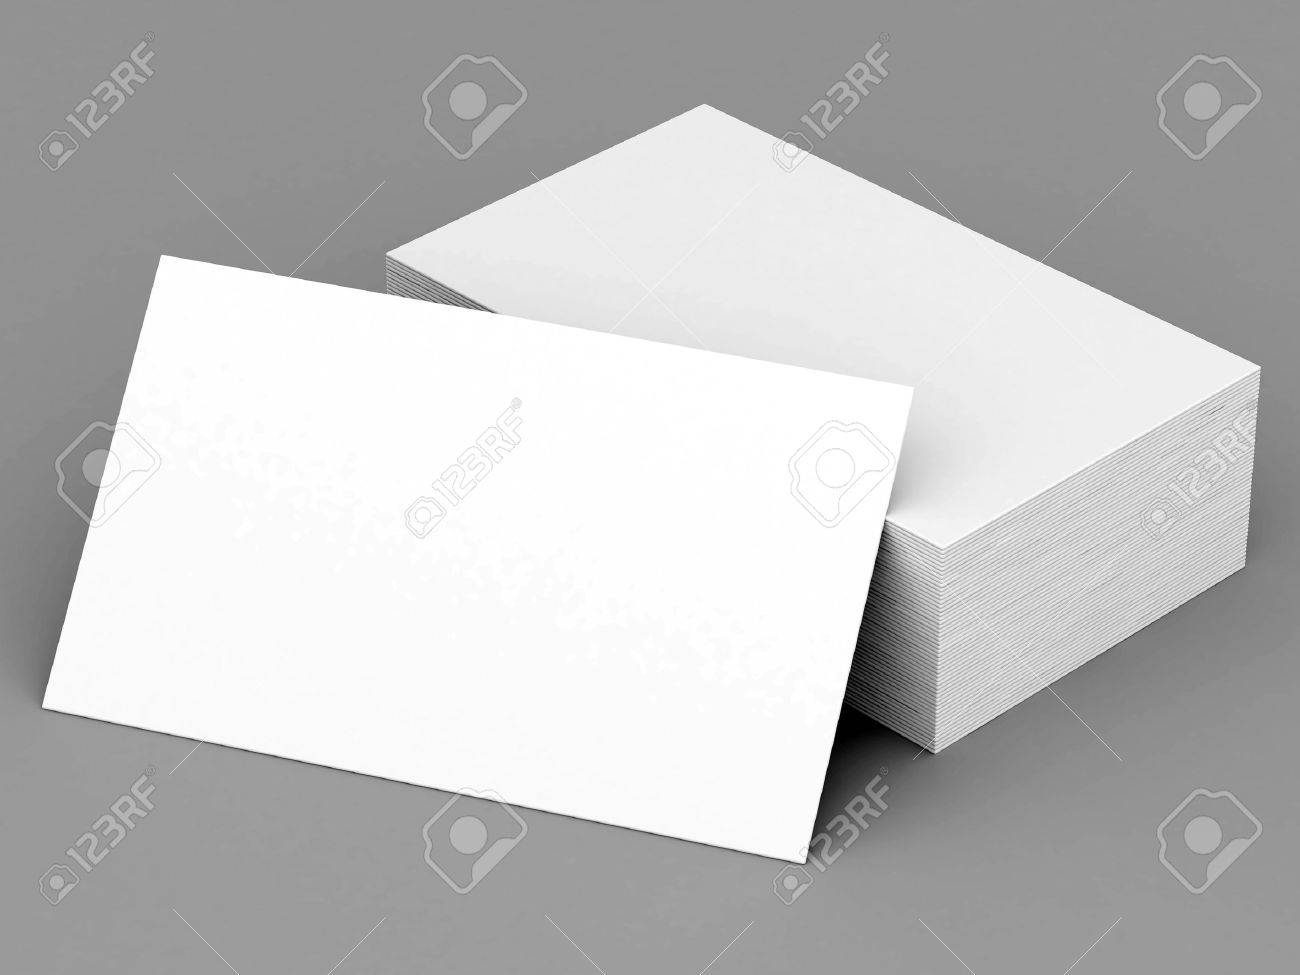 Business Cards Blank Mockup - Template - Gray Background Stock ...